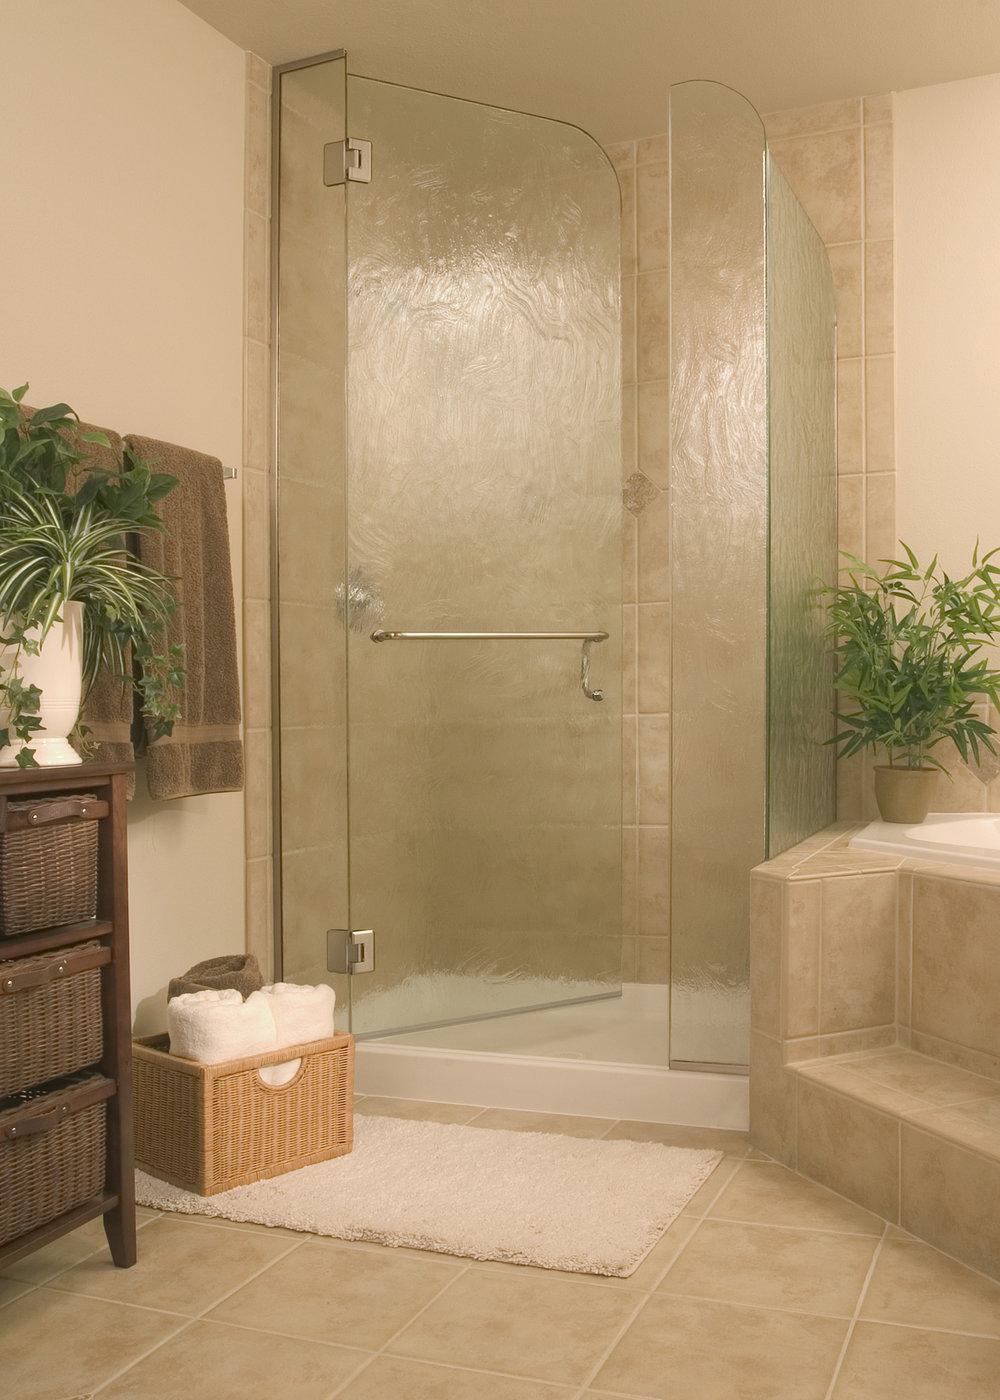 AAA KARTAK GLASS & CLOSET — SHOWER ENCLOSURES